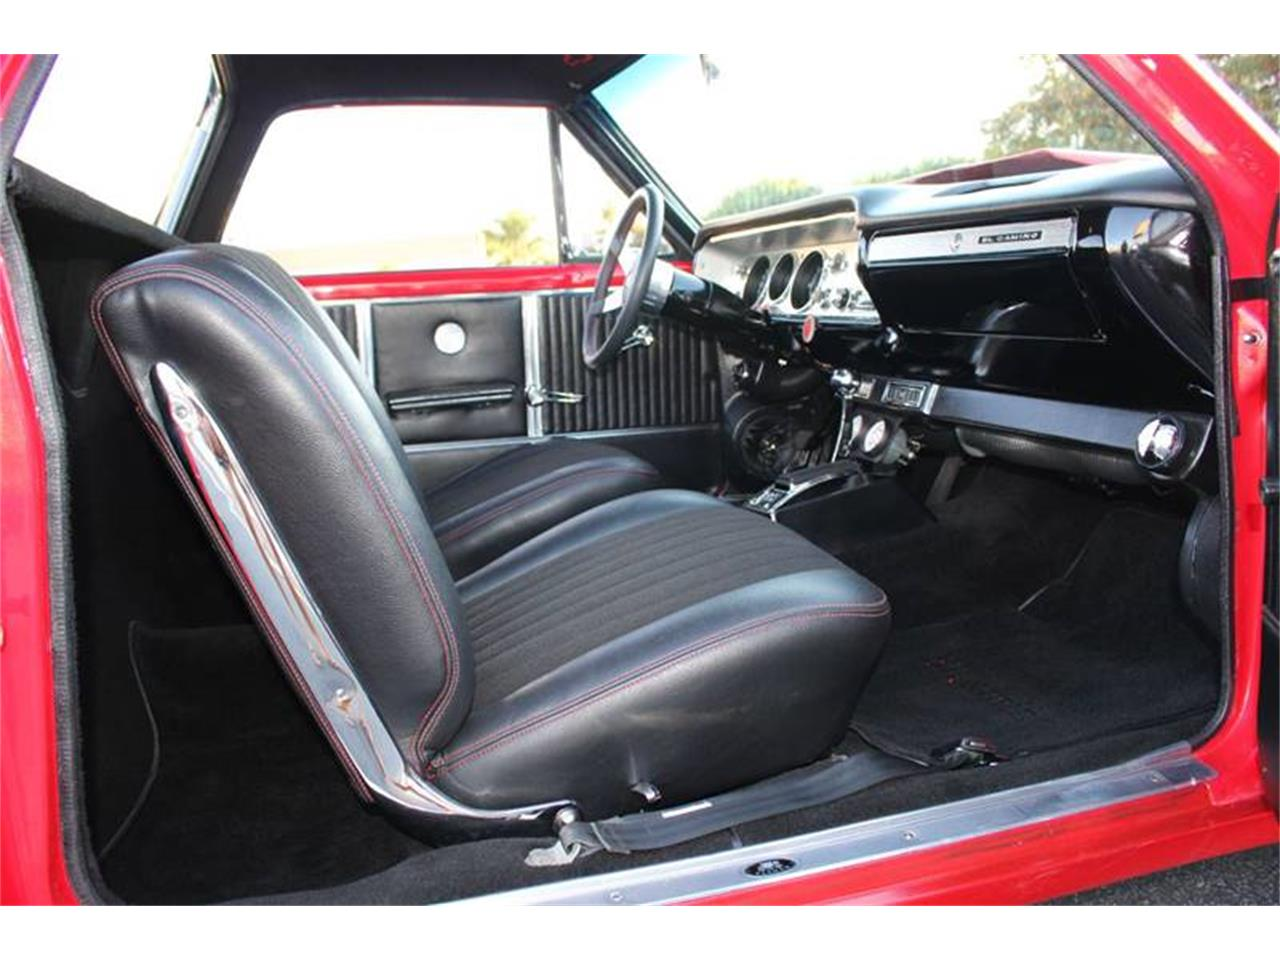 Large Picture of Classic '64 El Camino - $28,900.00 Offered by American Classic Cars - MH9D